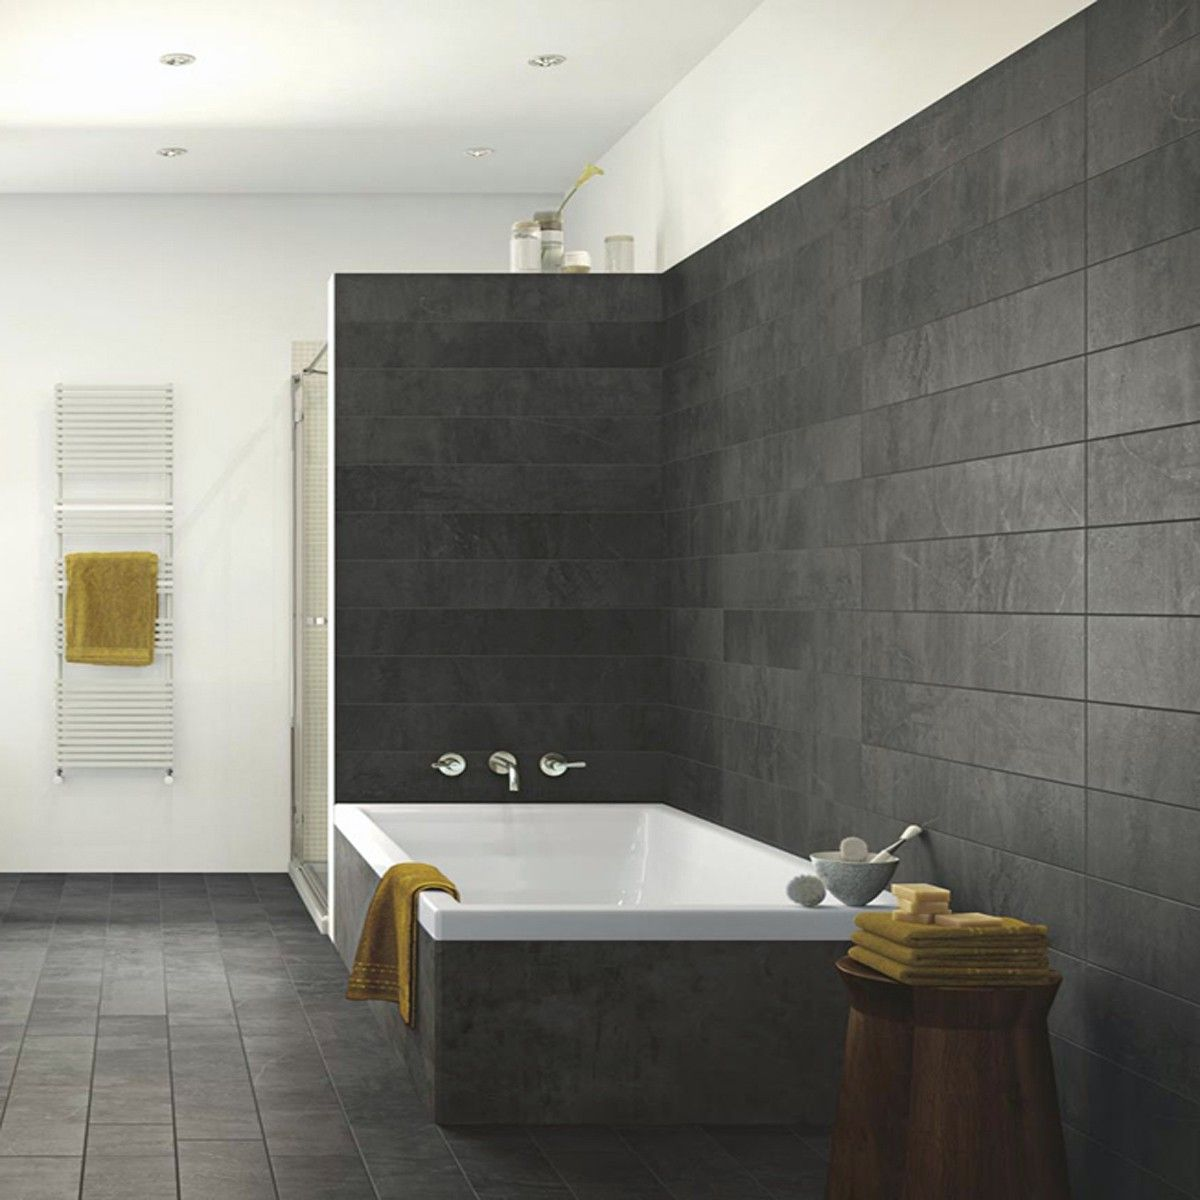 Kitchen Showrooms Online tile choice has showrooms throughout the midlands selling bathroom